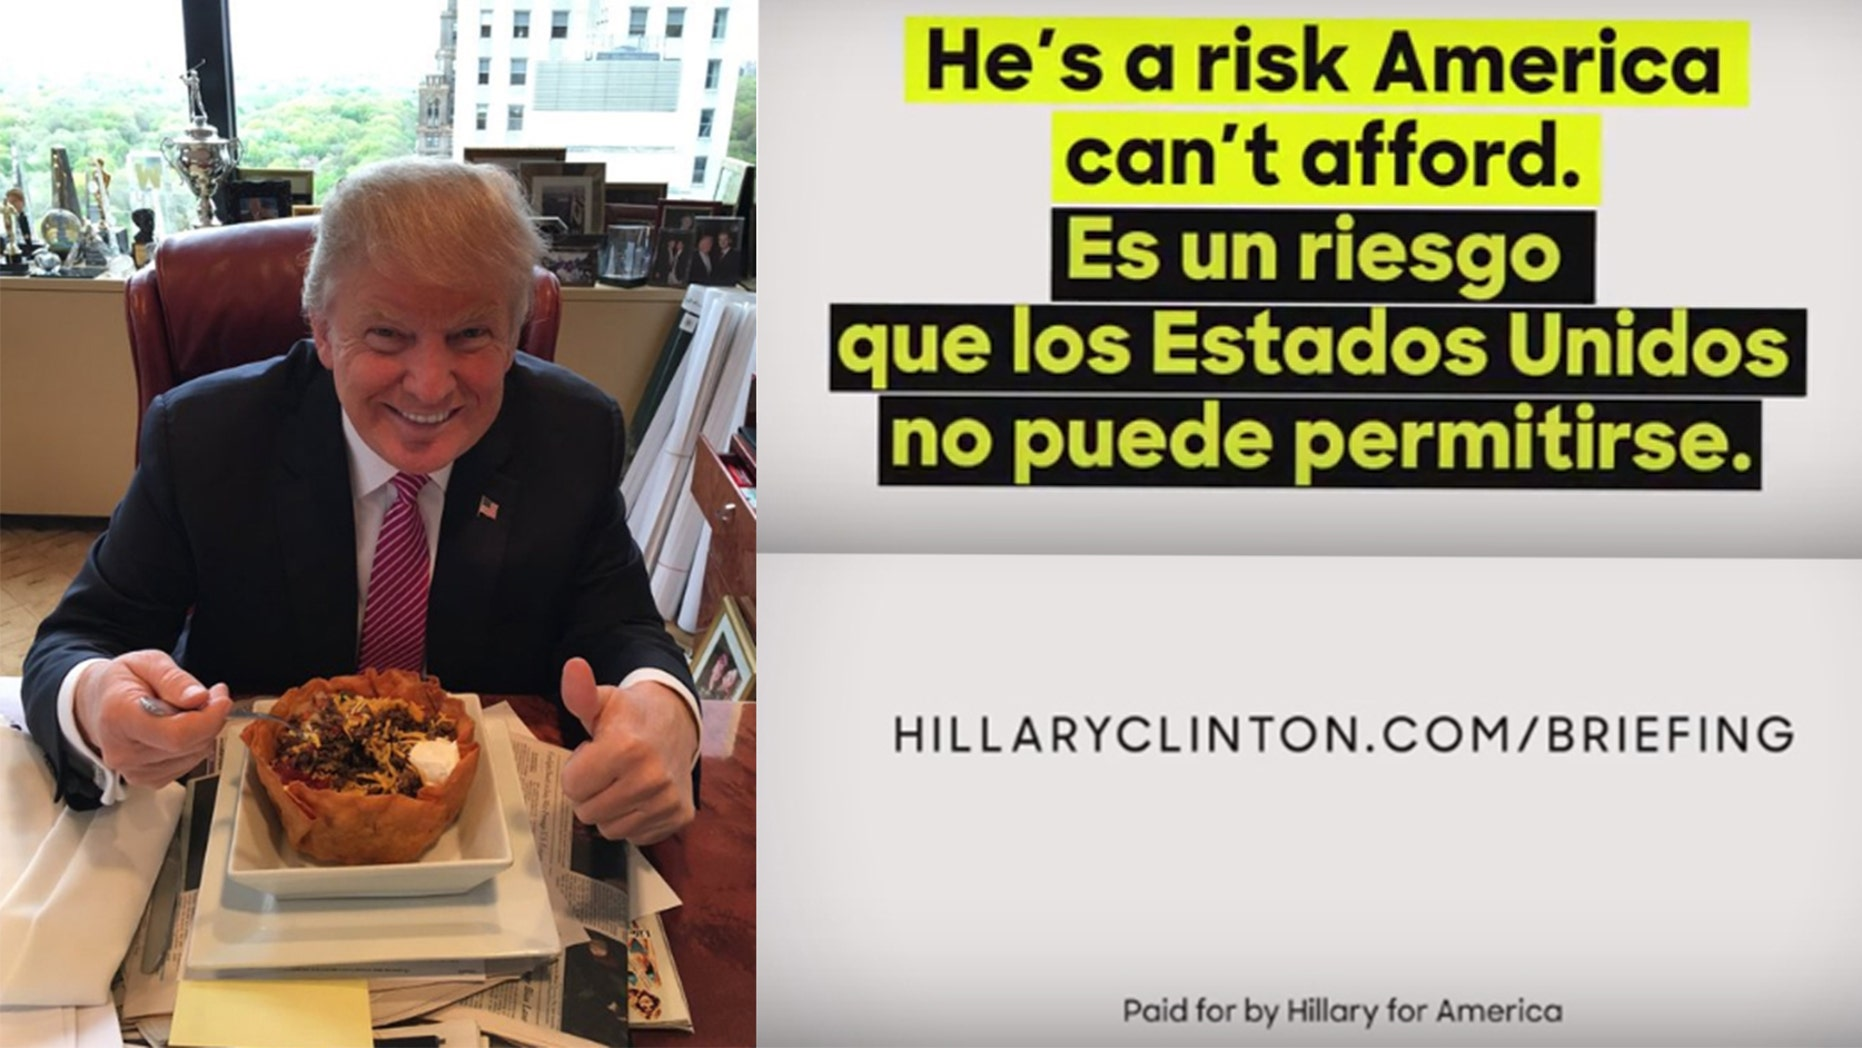 Photo on the left was tweeted by Donald Trump and images on the right are from an anti-Trump ad geared toward Latinos. Both were released on Cinco de Mayo.